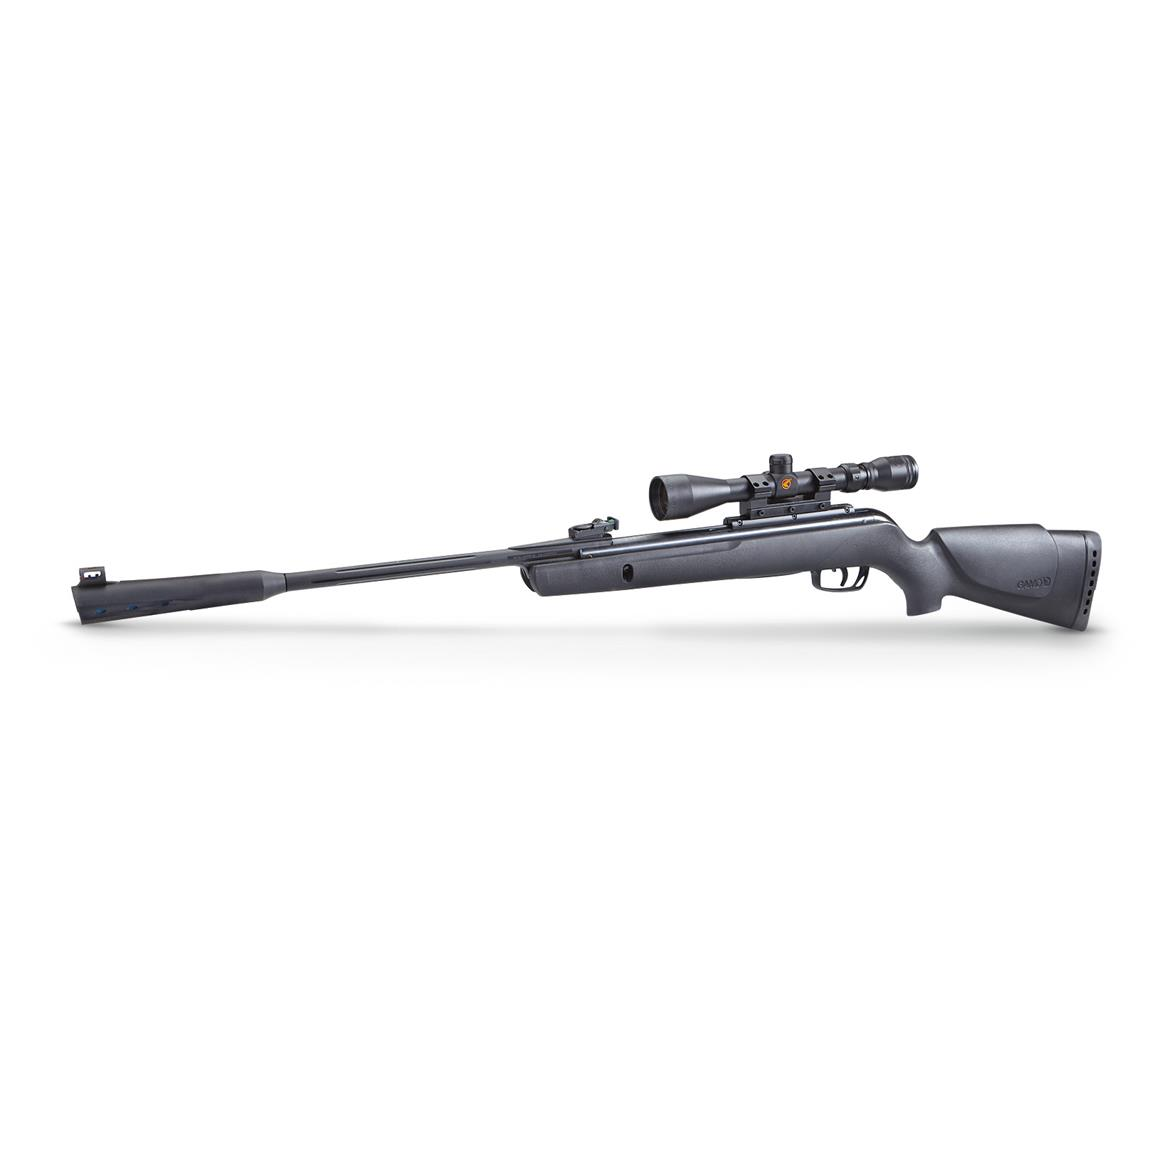 Gamo Whisper Refurbished Air Rifle with 3-9x40mm Scope